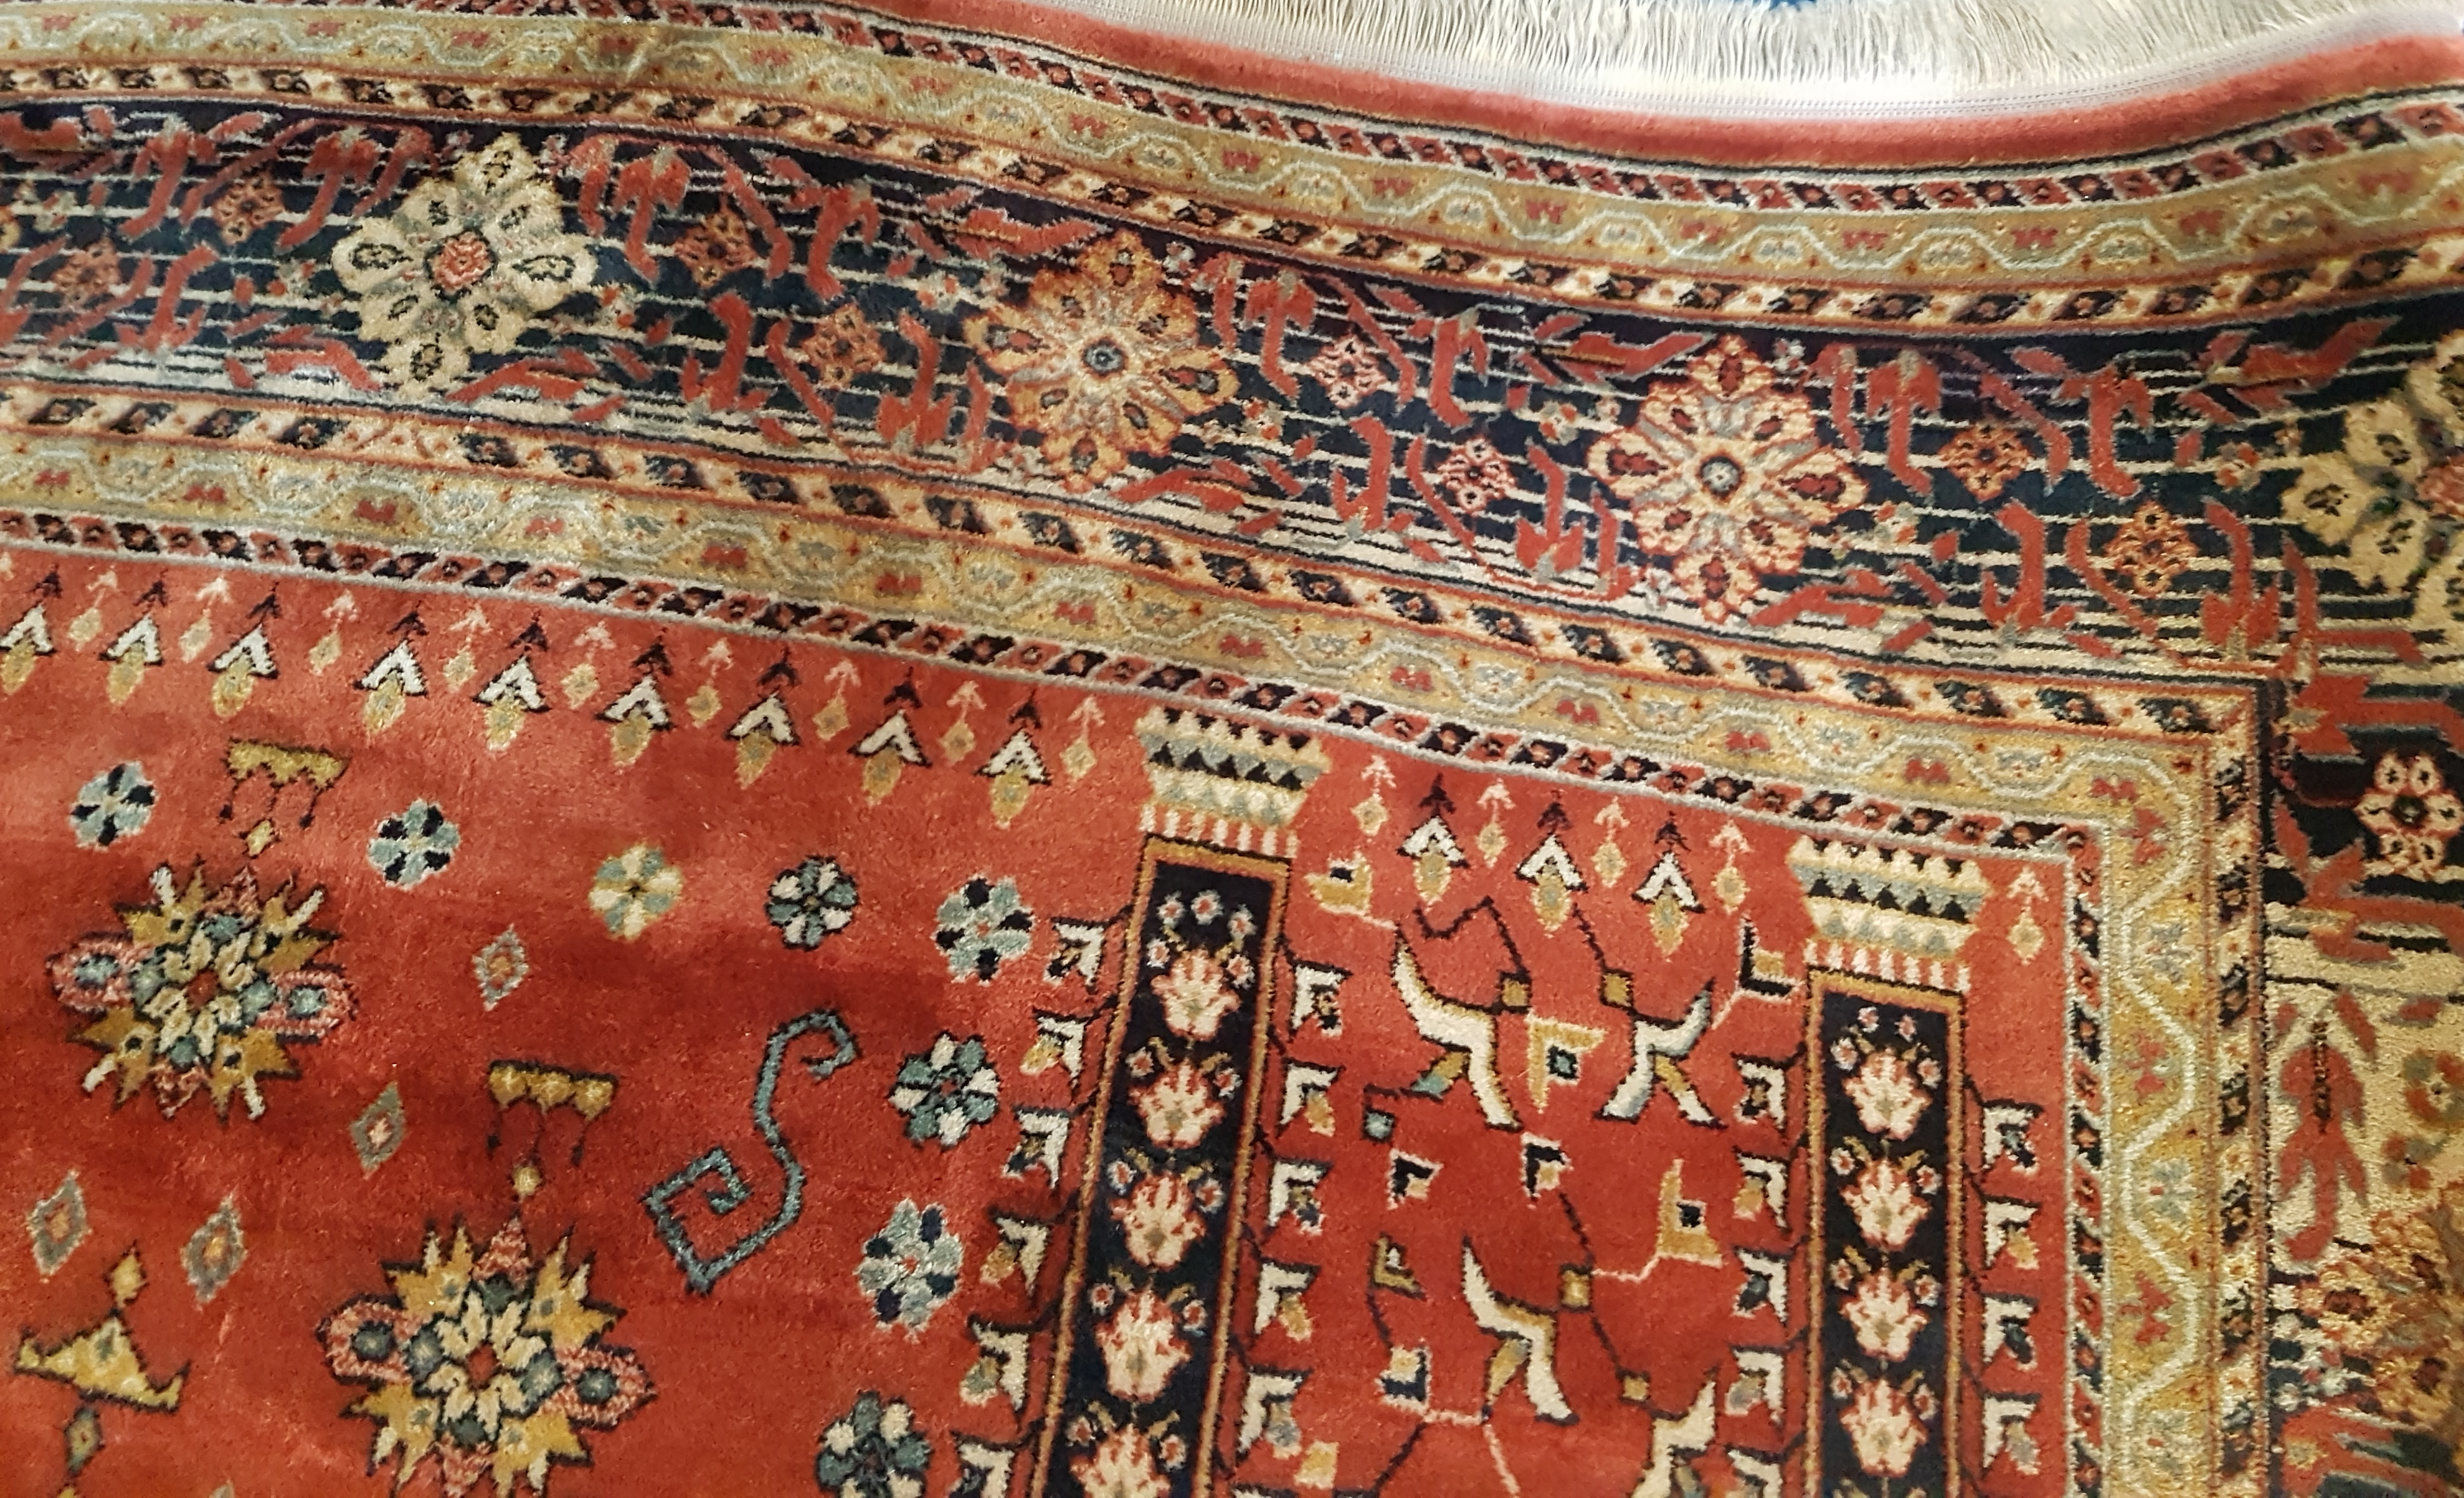 Close-up of an ochre coloured patterned rug.